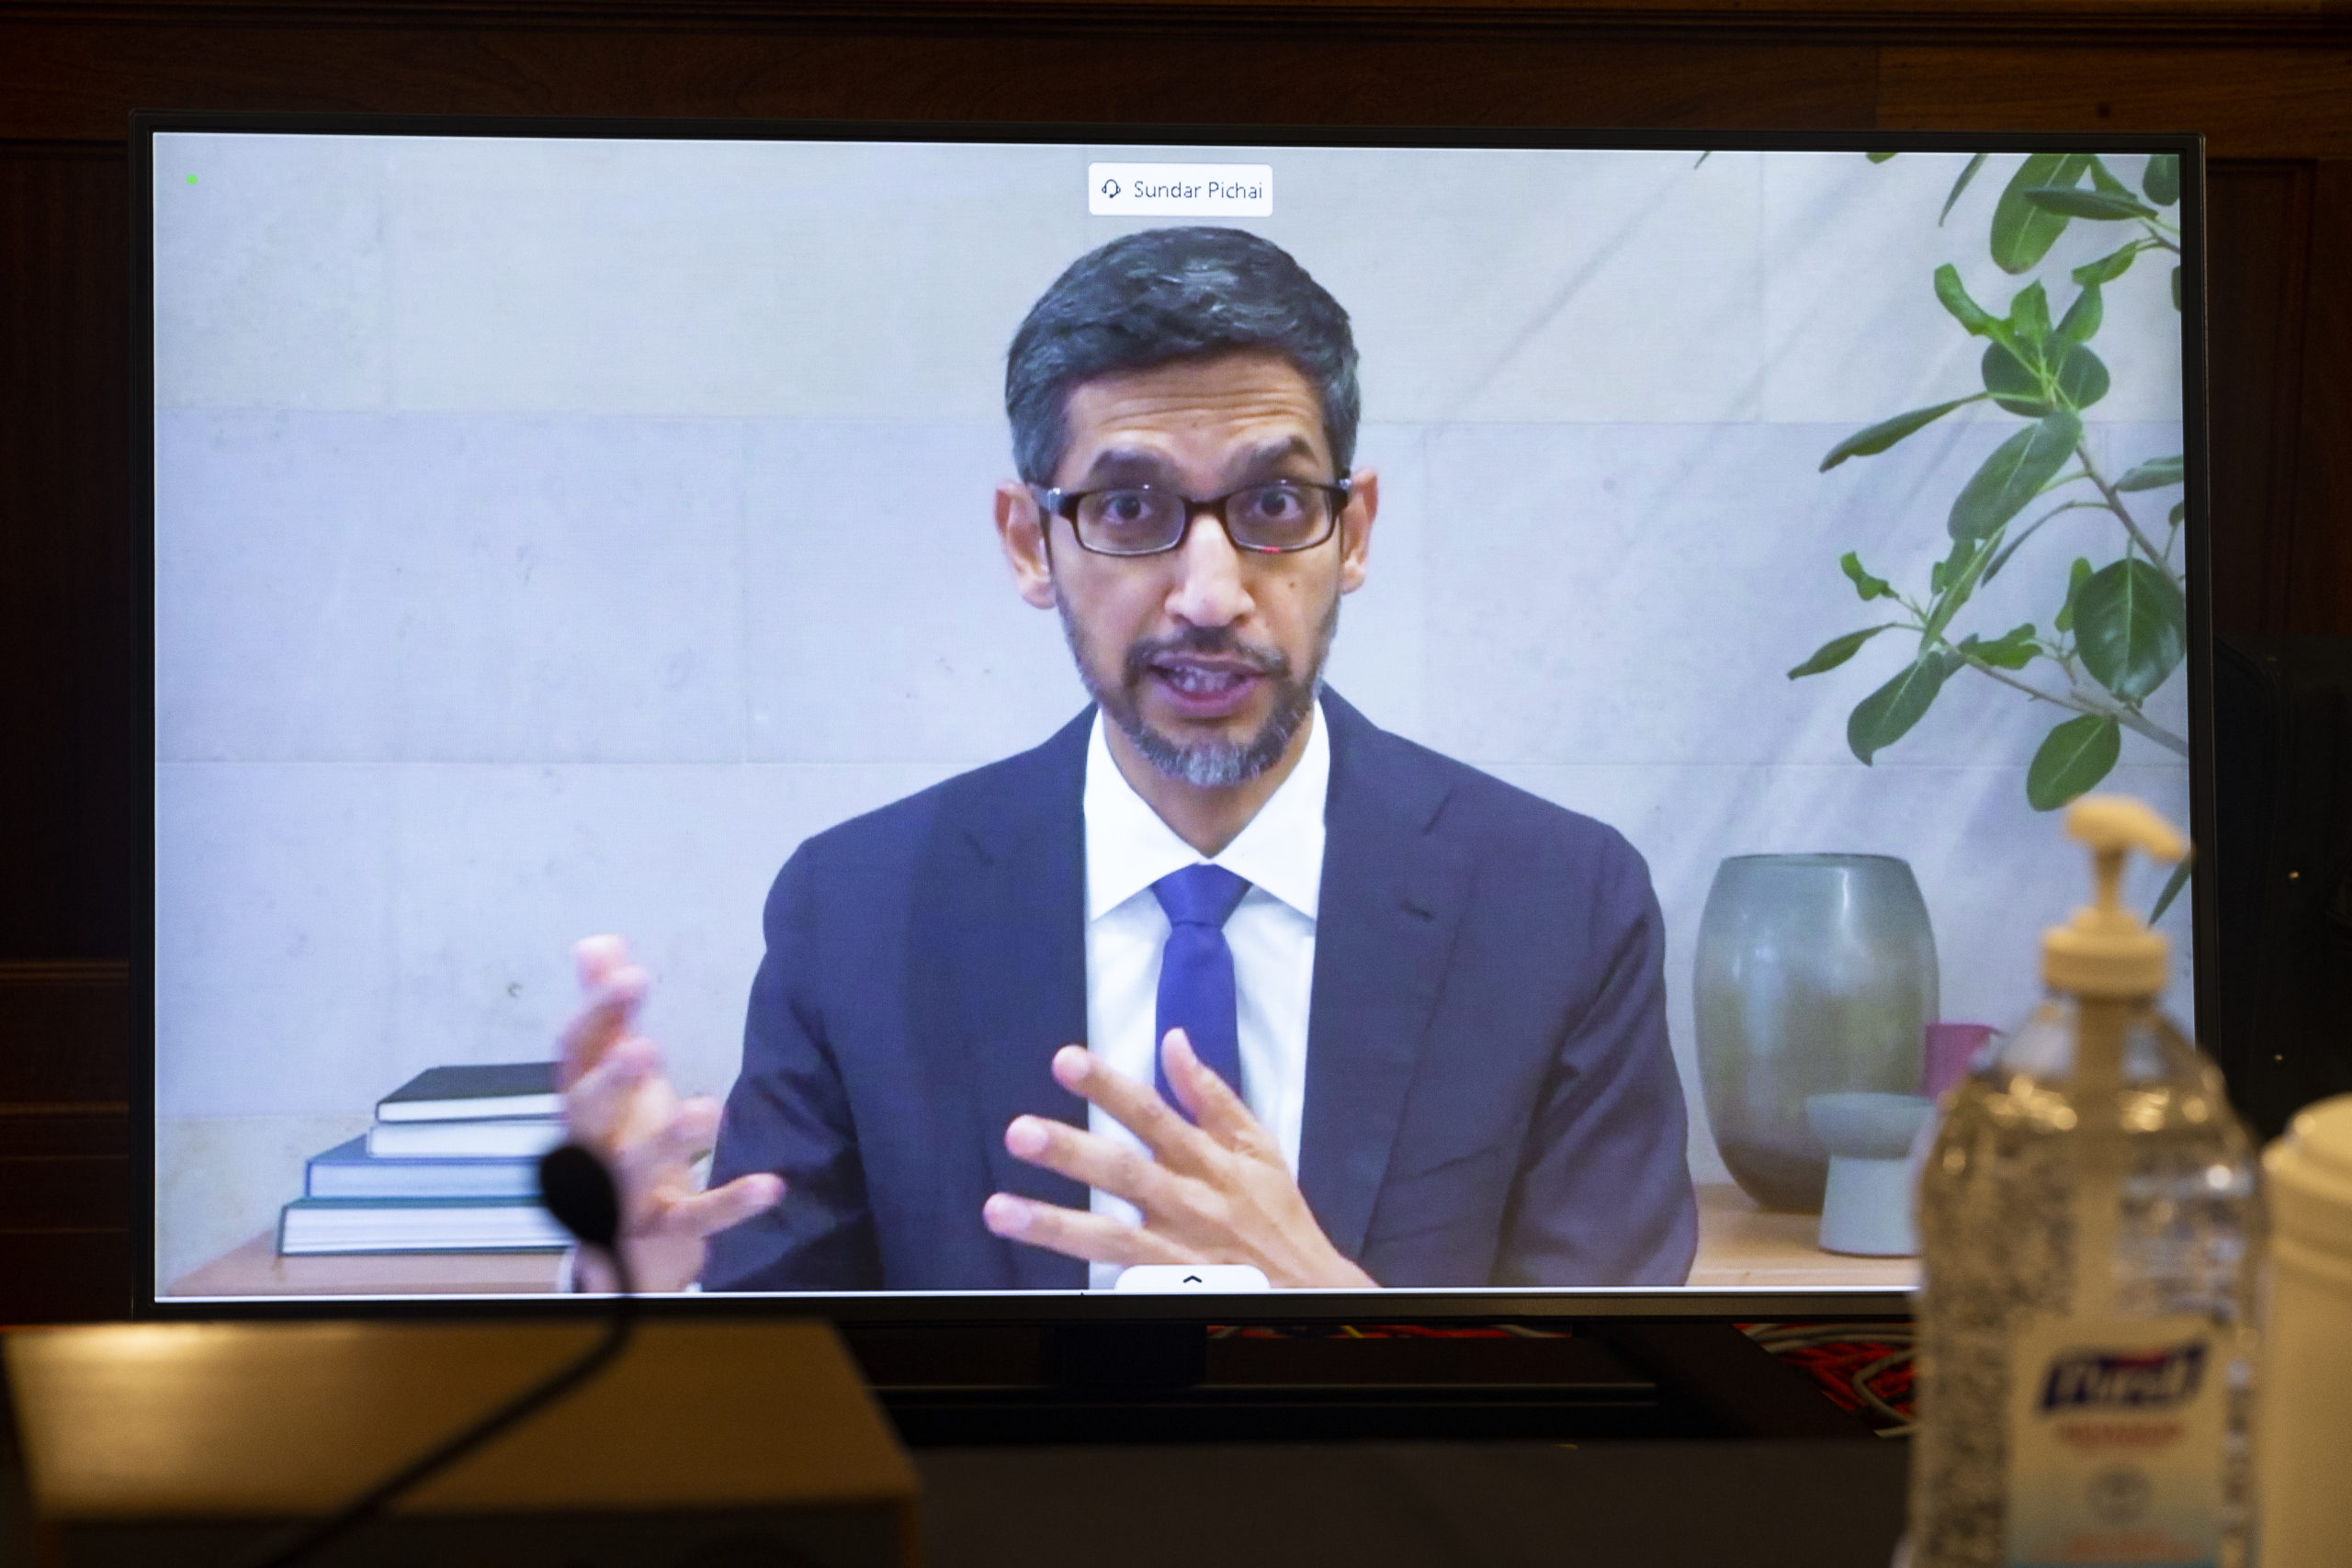 CEO of Alphabet Inc. and its subsidiary Google, Sundar Pichai, appears on a monitor as he testifies remotely during a Senate hearing Oct. 28. (Michael Reynolds-Pool/Getty Images)